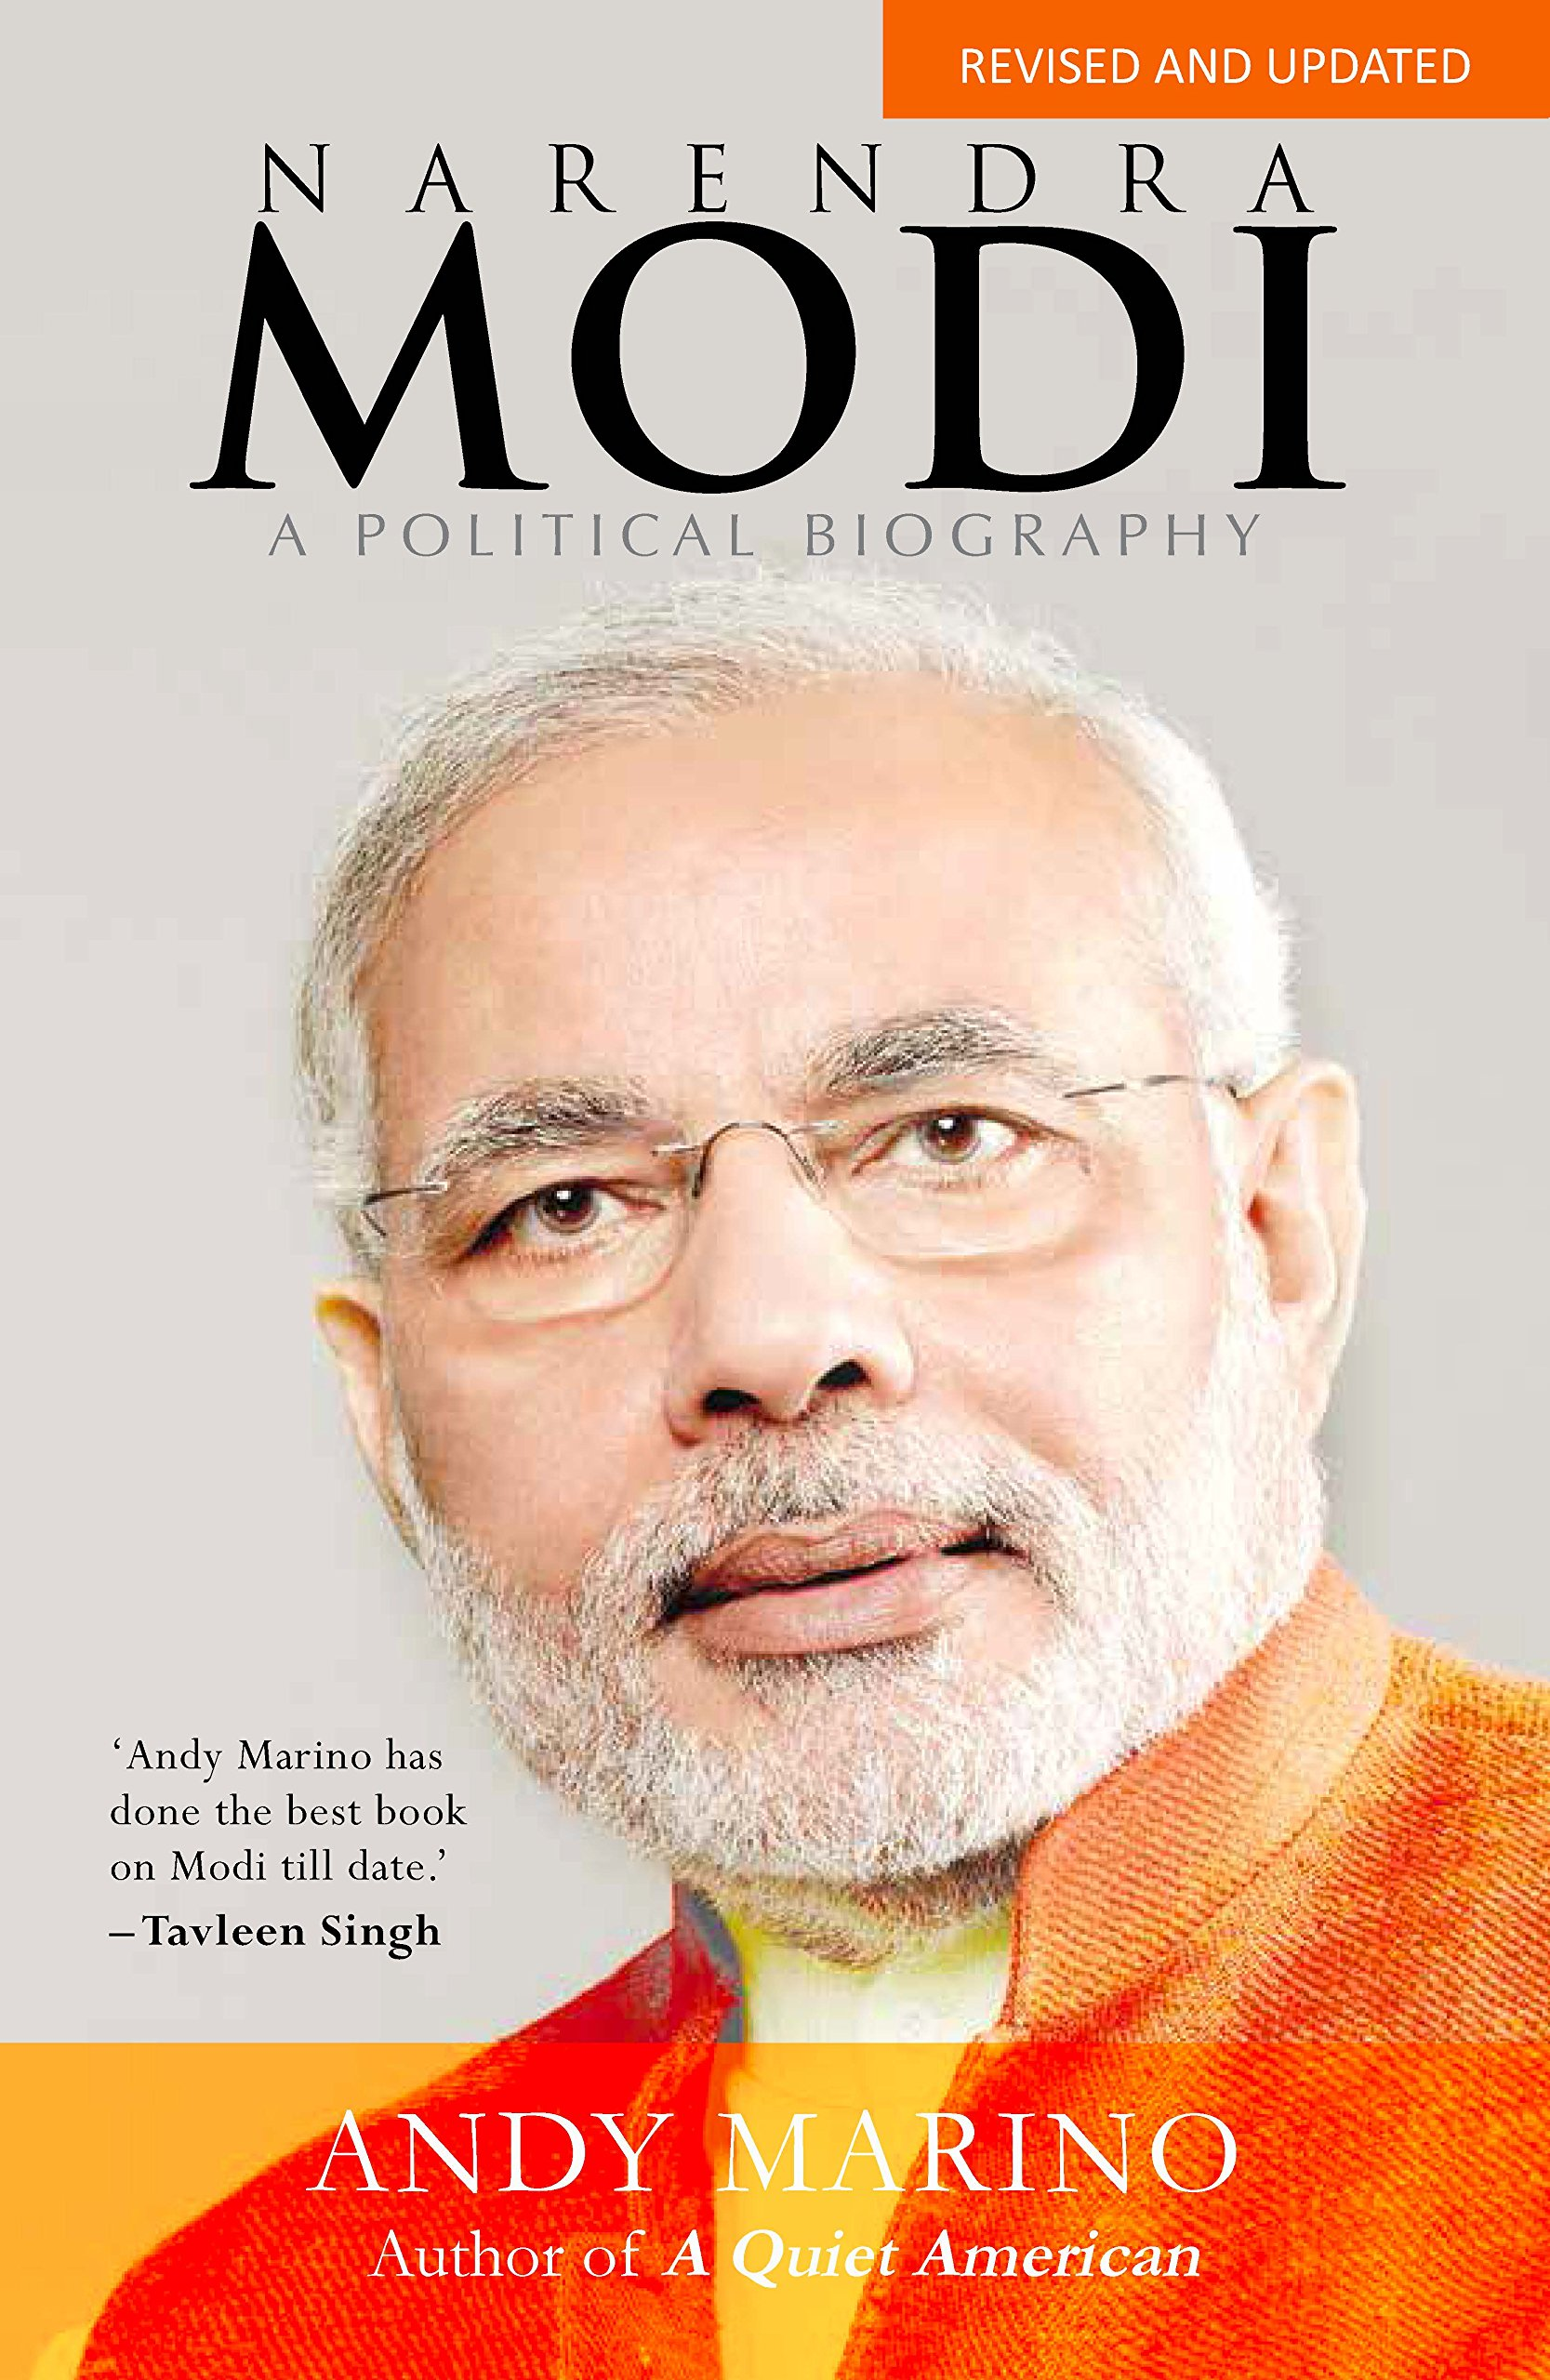 Buy Narendra Modi: A Political Biography Book Online At Low Prices In India   Narendra Modi: A Political Biography Reviews & Ratings  Amazon